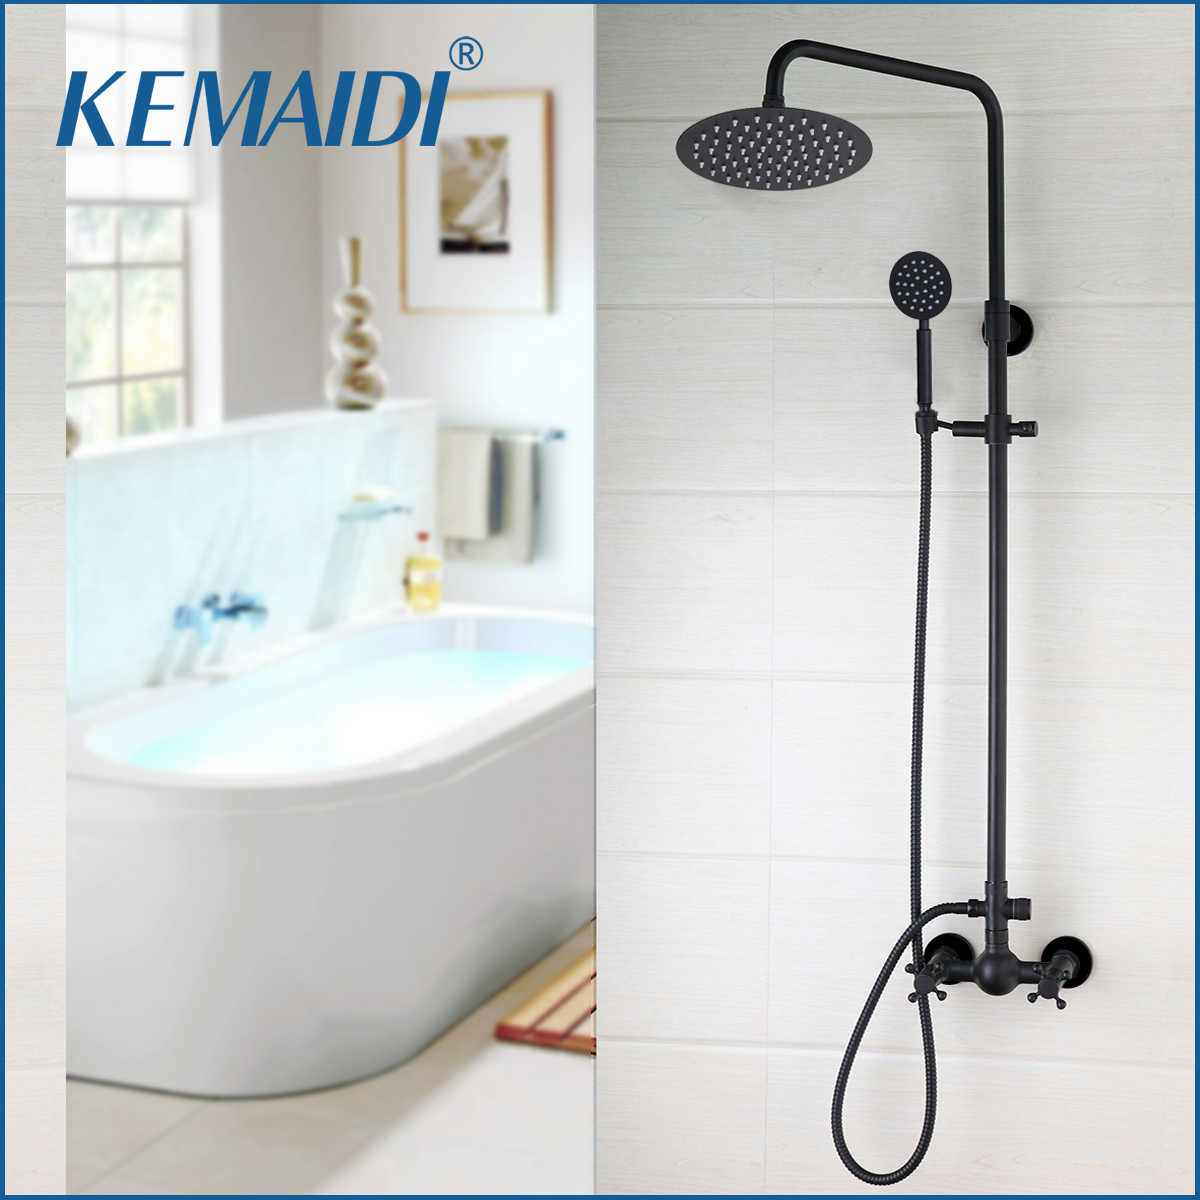 KEMAIDI Black Wall Mount Rainfall 8 Inch Round Head Hand Spray 2 Functions adjustable Hand Bathroom Shower Faucet Set Mixer Taps